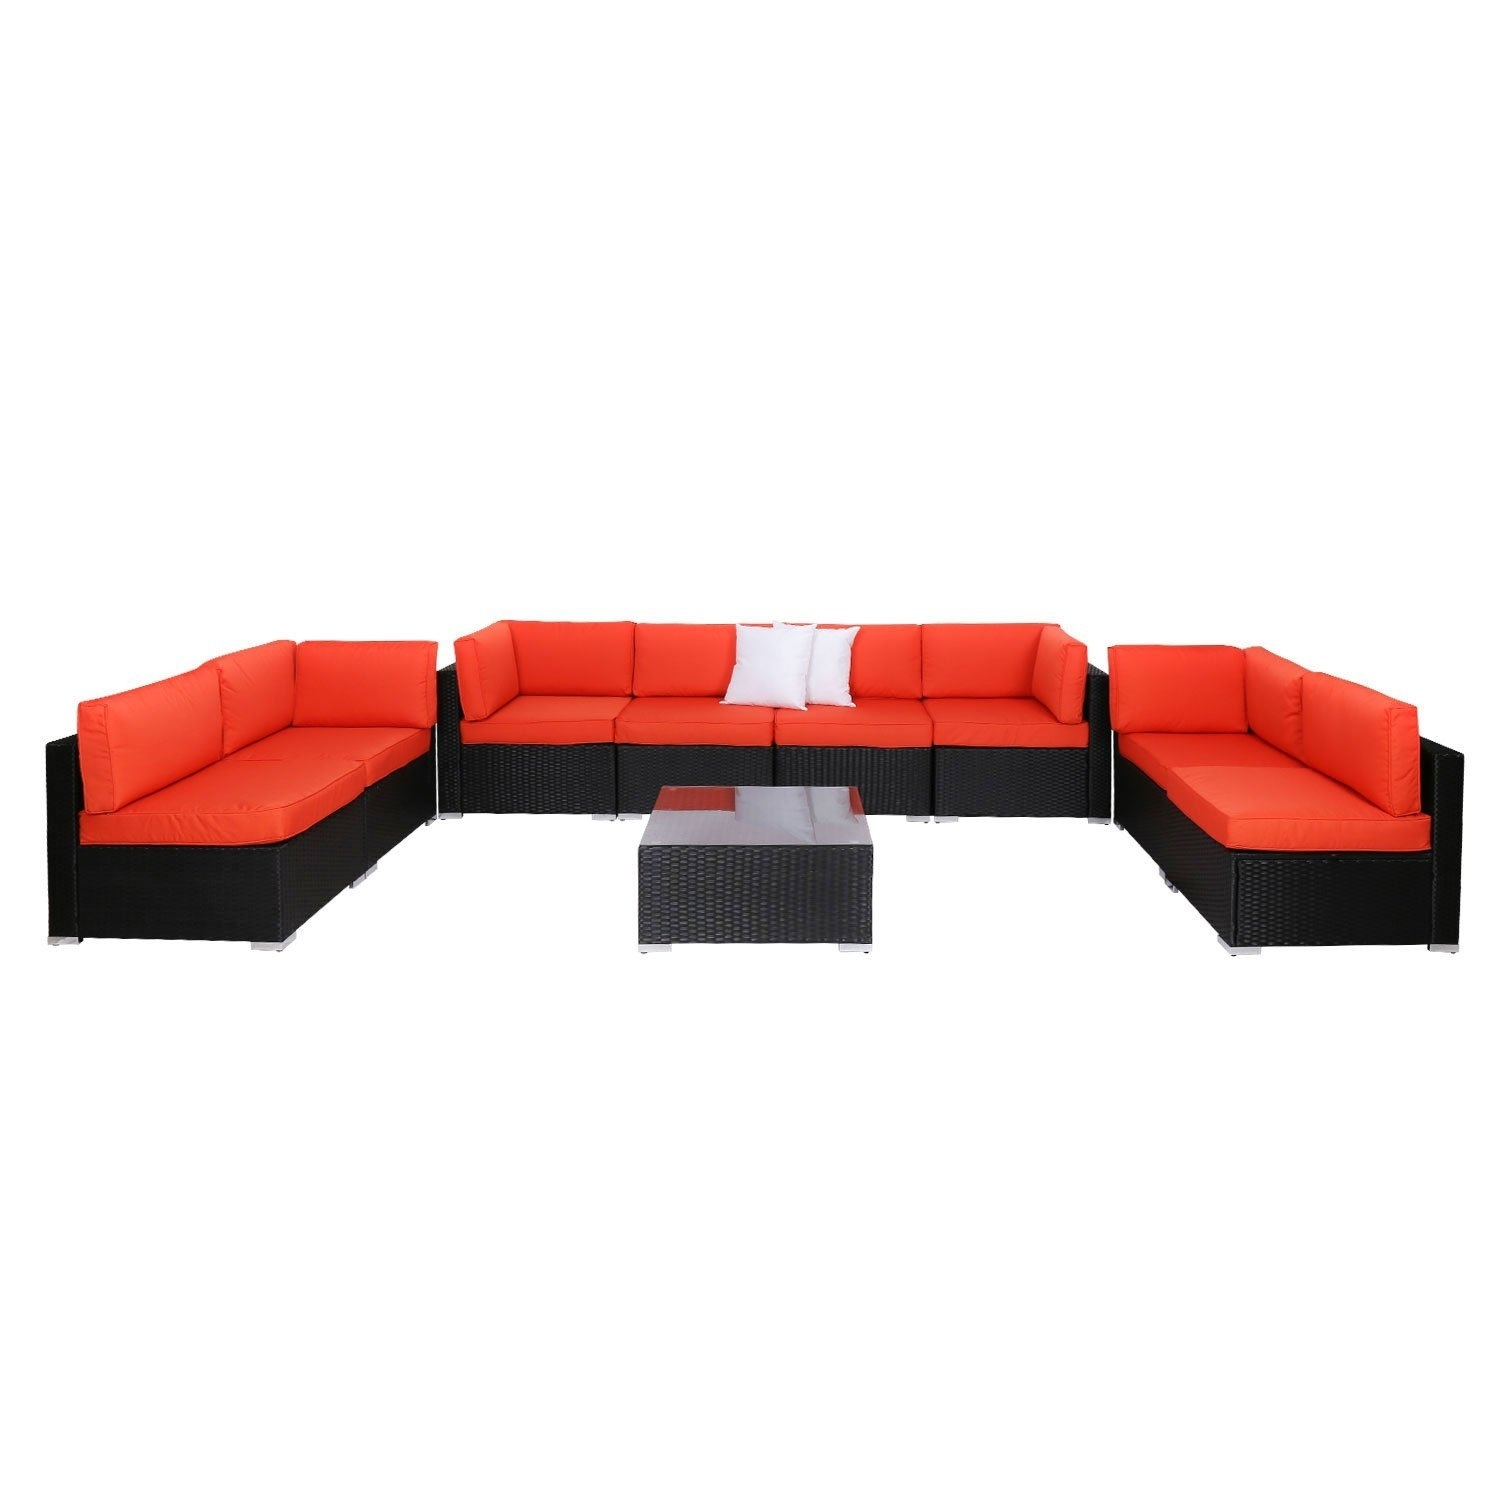 Cheap Ashley Furniture Sectional Sofas, Find Ashley Furniture For Delano 2 Piece Sectionals With Laf Oversized Chaise (Image 7 of 25)